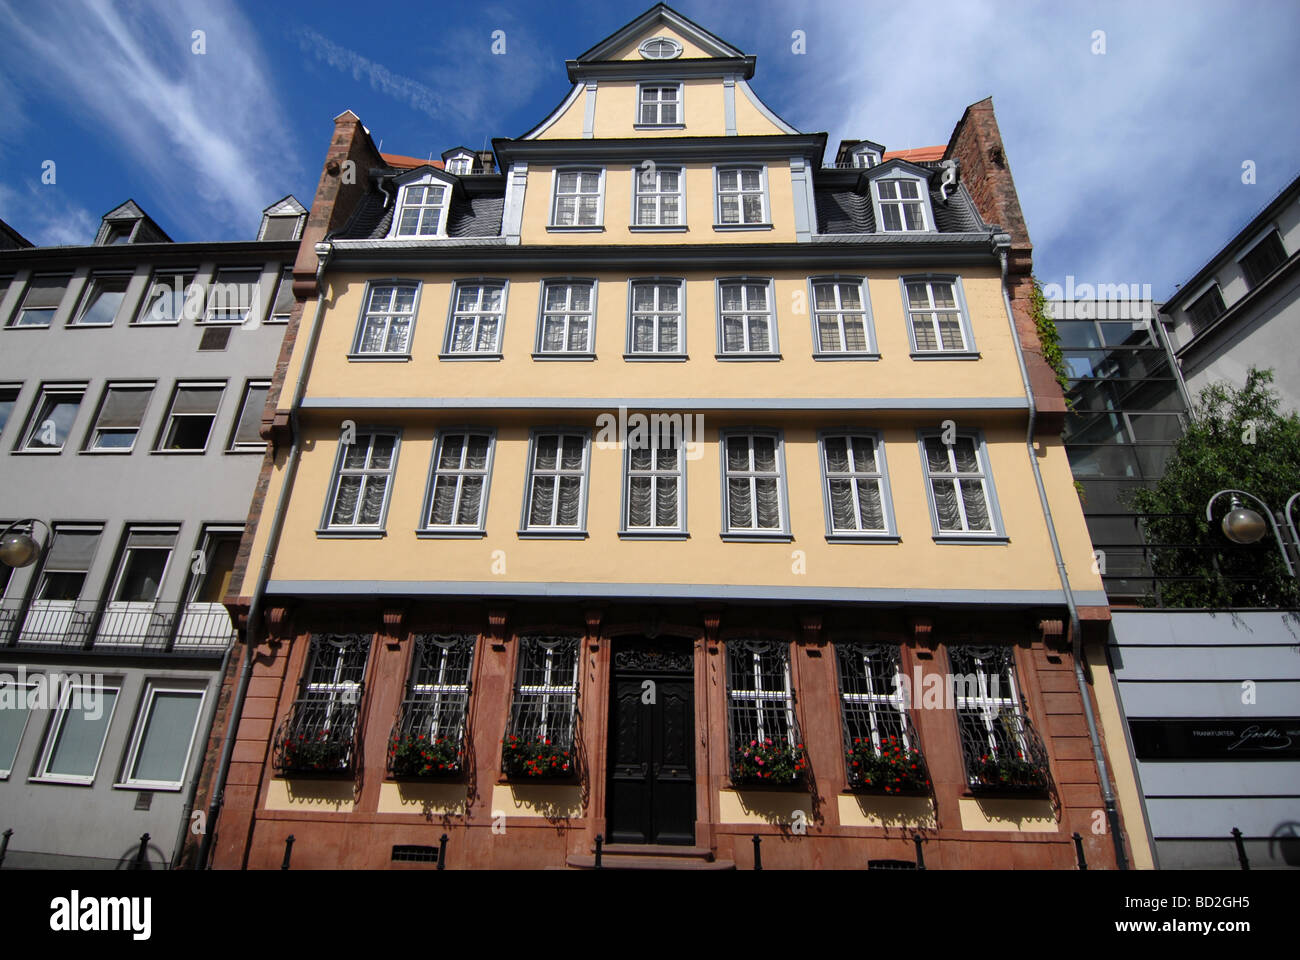 Goethe Haus Frankfurt Am Main Germany Stock Photo 25257825 Alamy